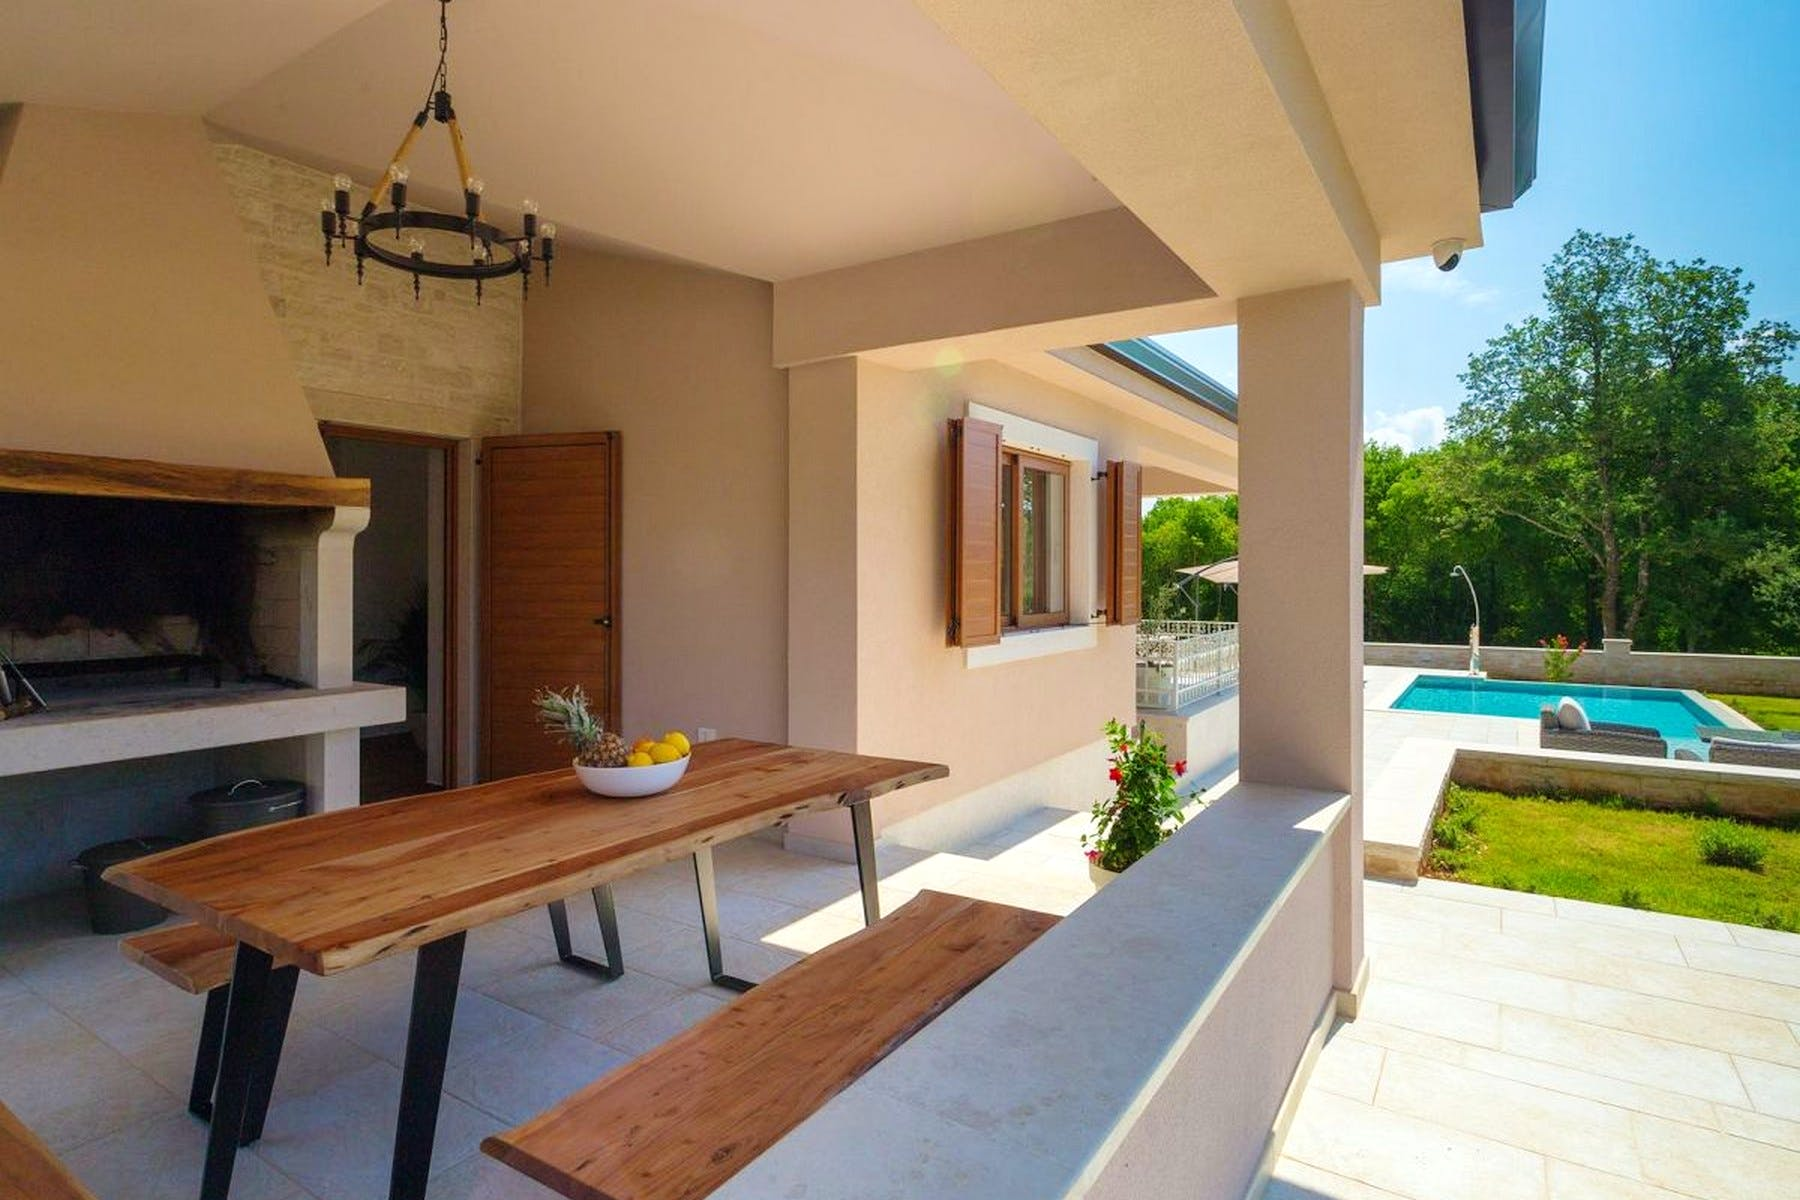 Outside dining area with stone barbecue